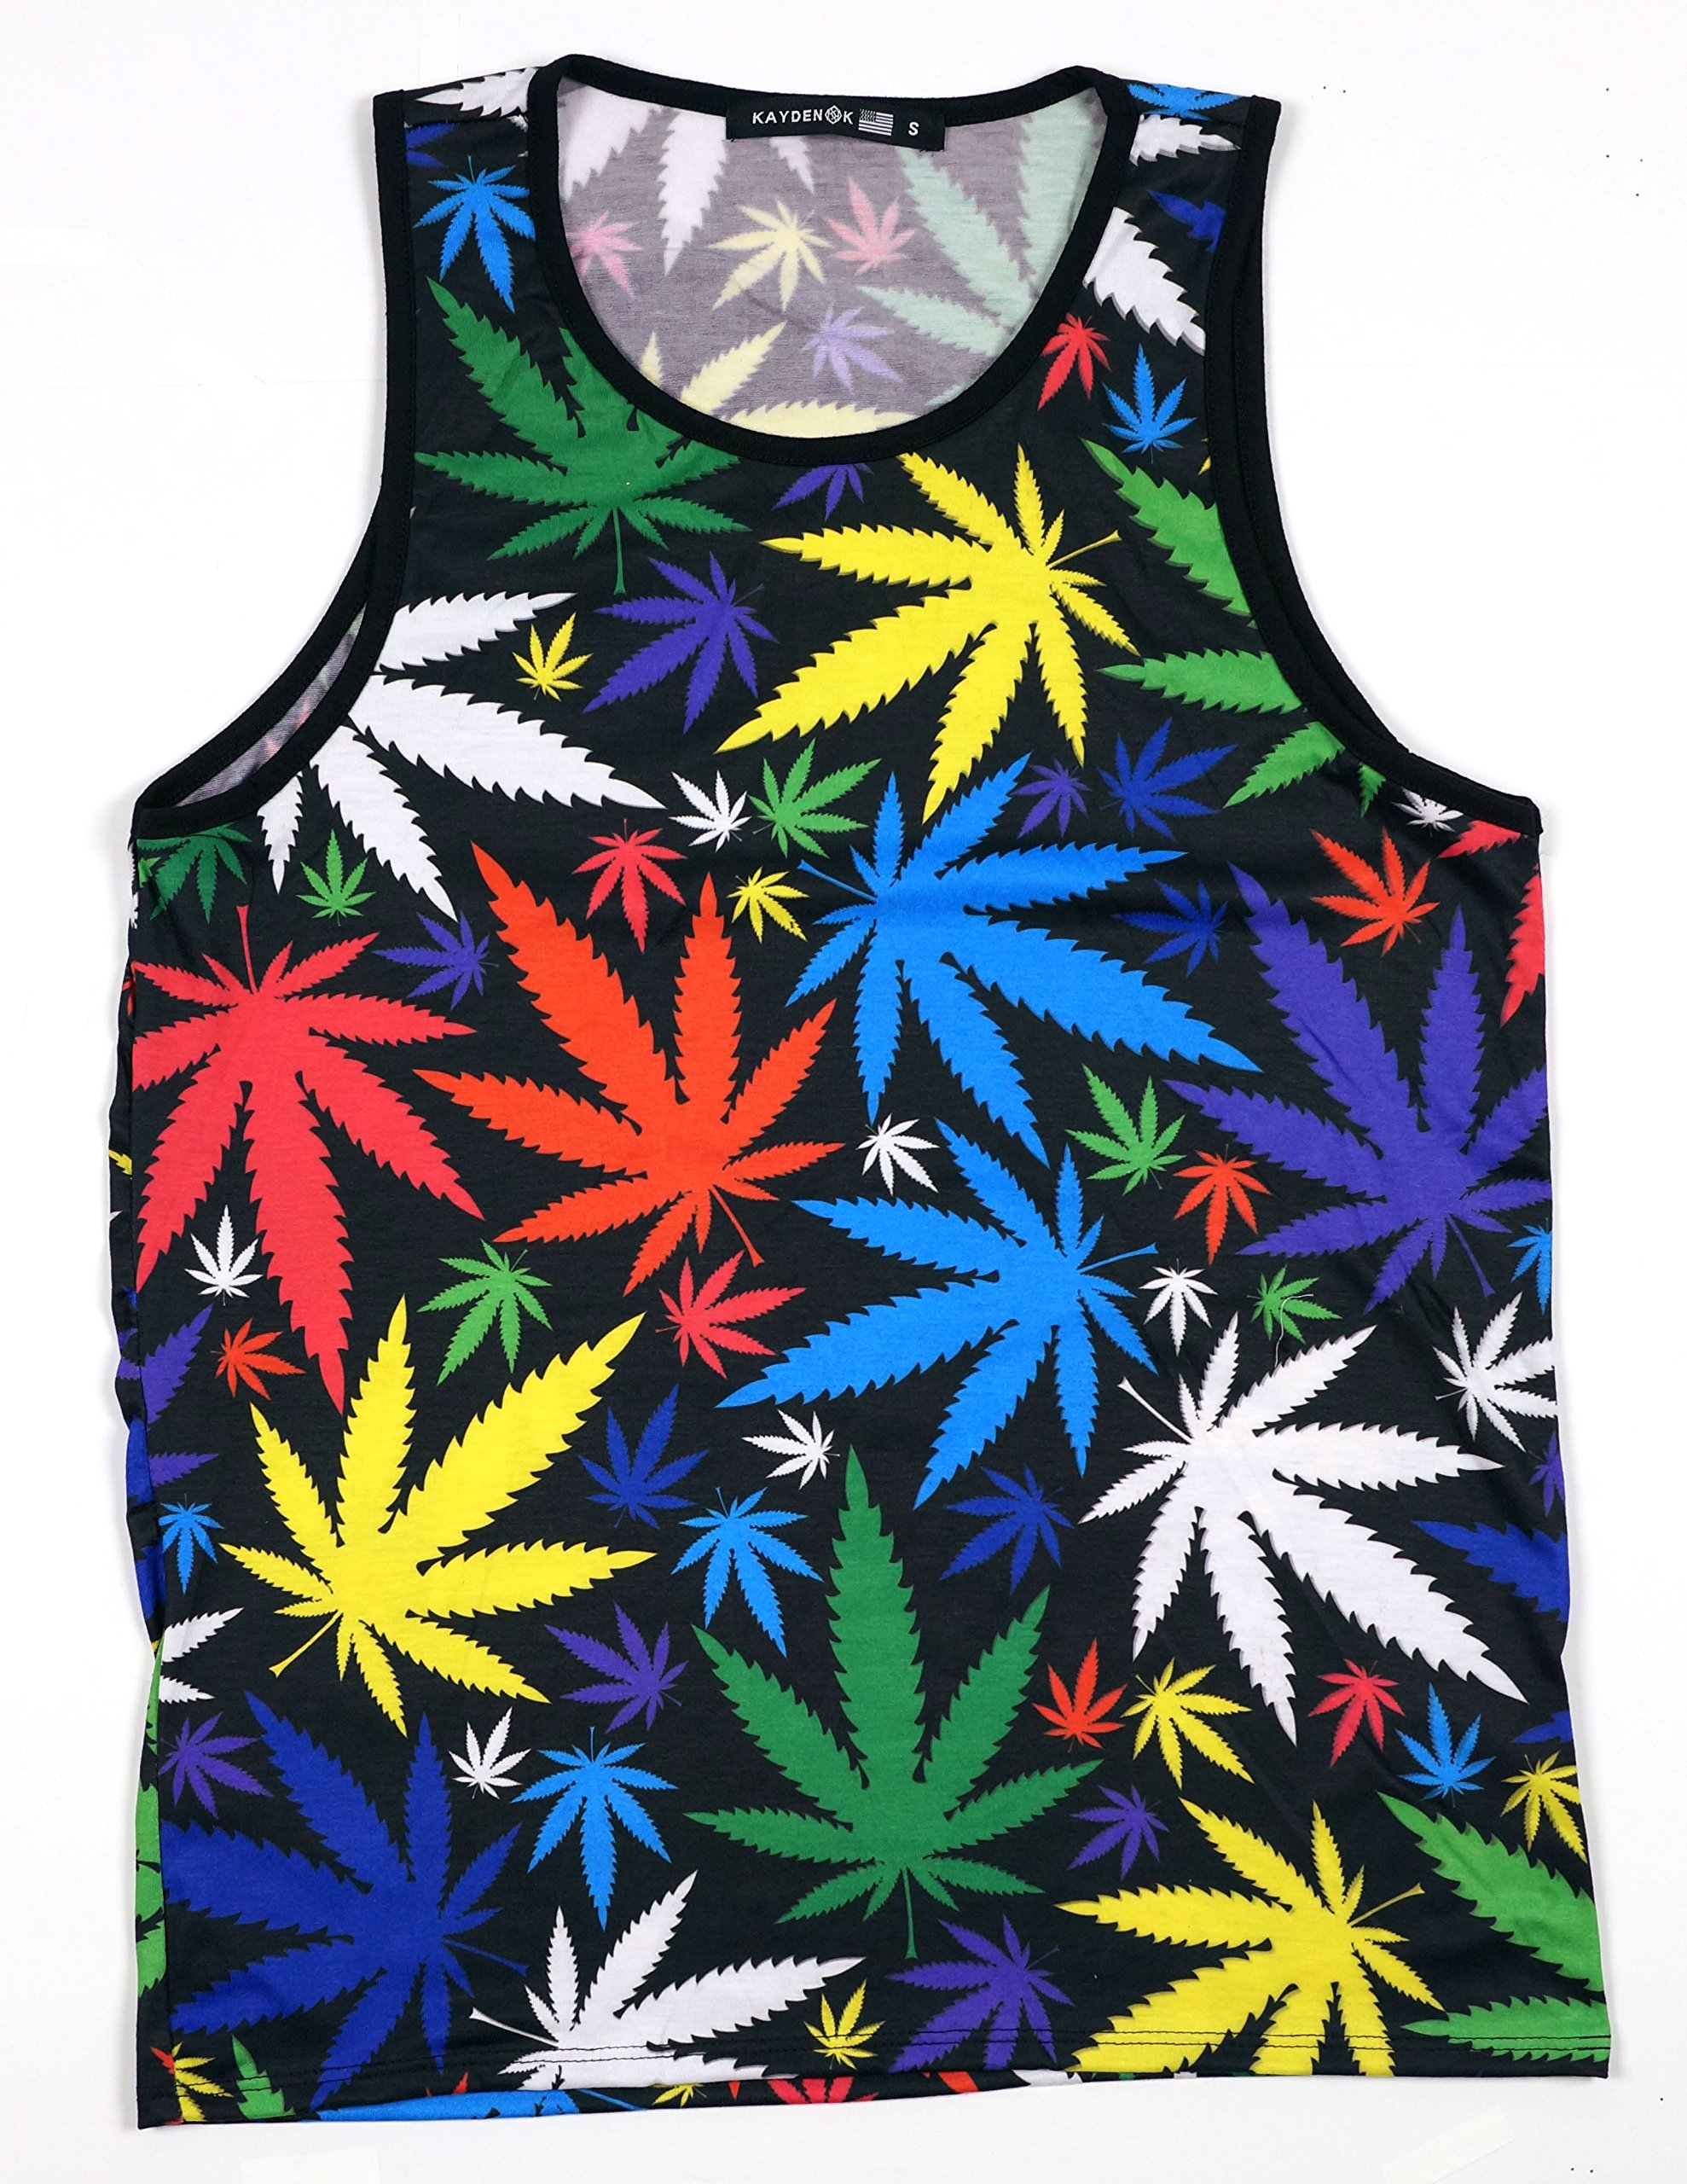 KAYDEN.K Men's Sublimation Tank Top Colorful Marijuana Leafs 2 sides printed